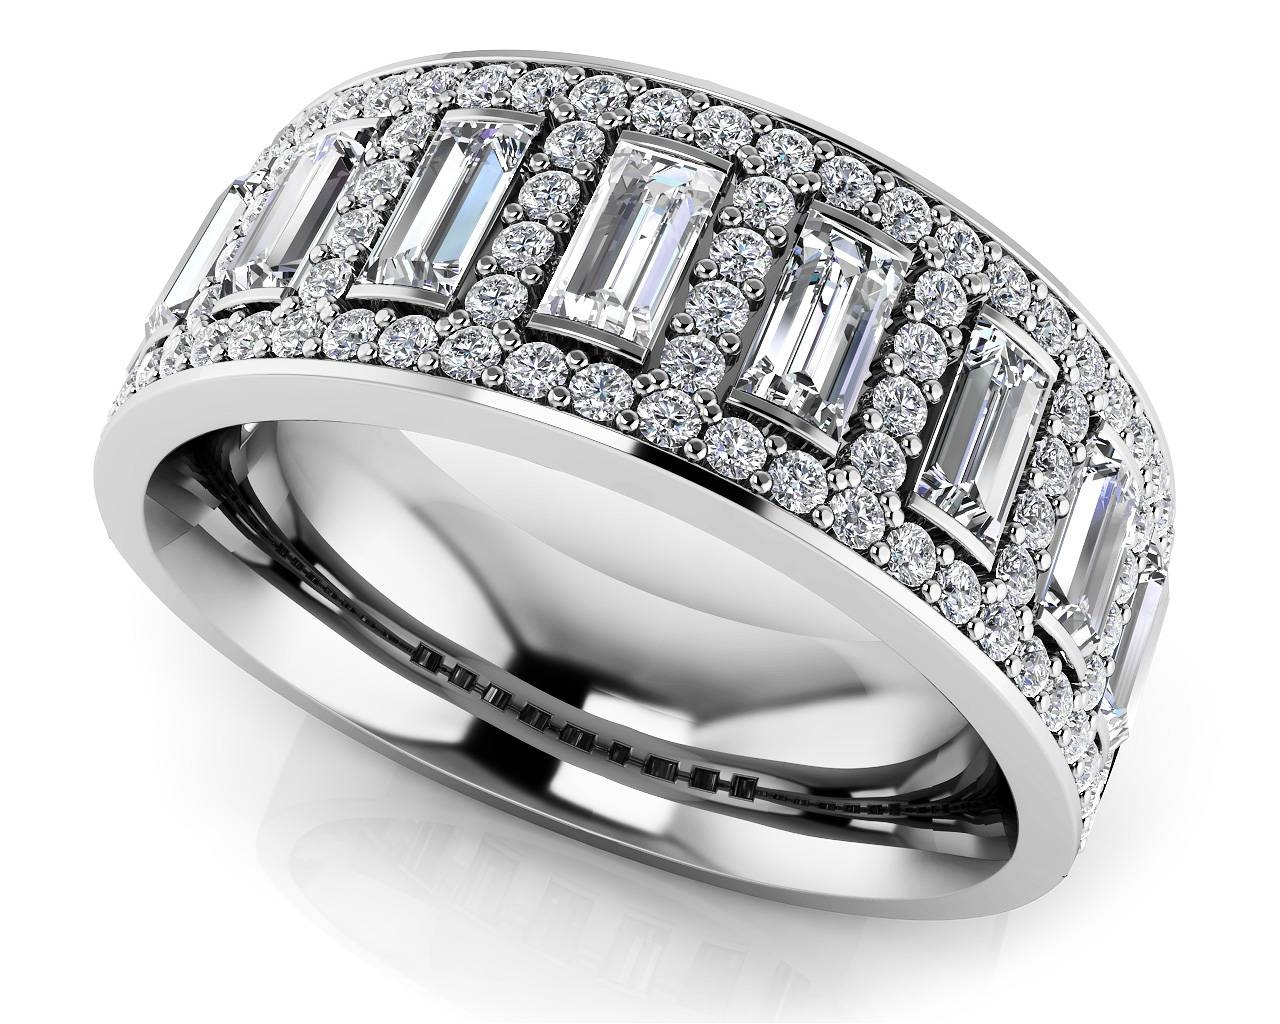 25 Photo Of Wide Band Anniversary Rings